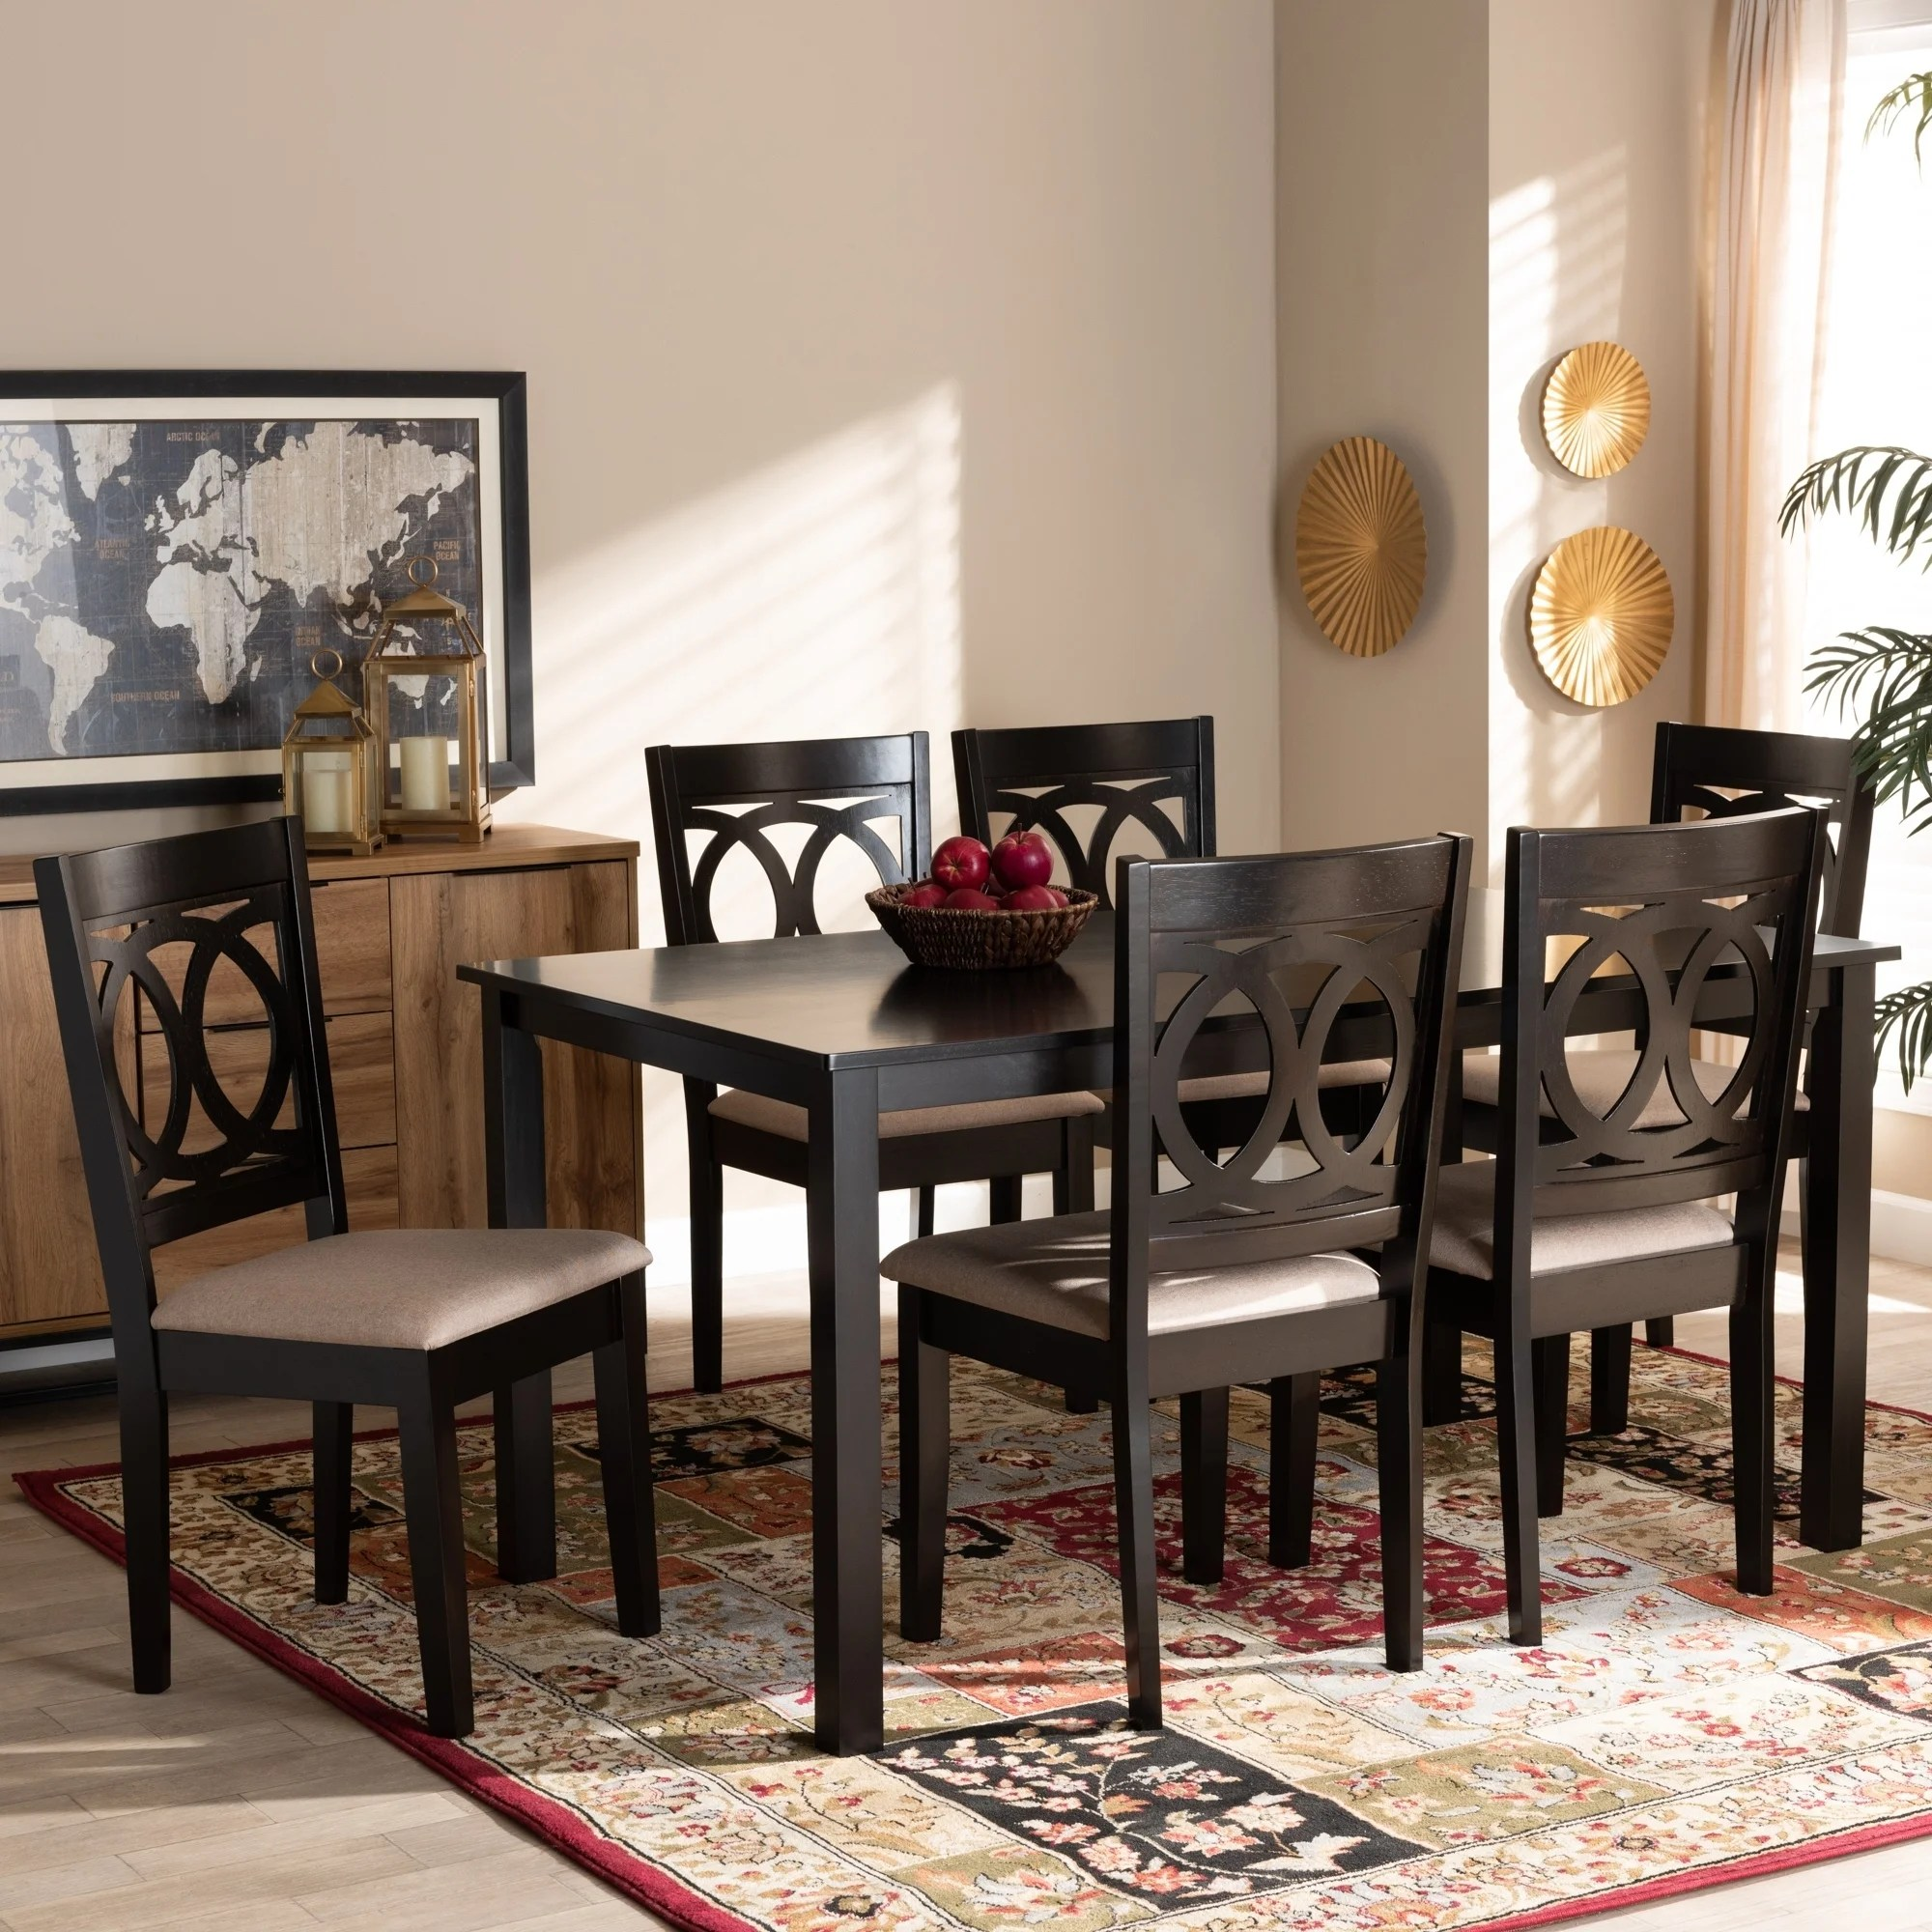 Lenoir Modern And Contemporary Upholstered Wood 7 Piece Dining Set Overstock 30126776 Grey